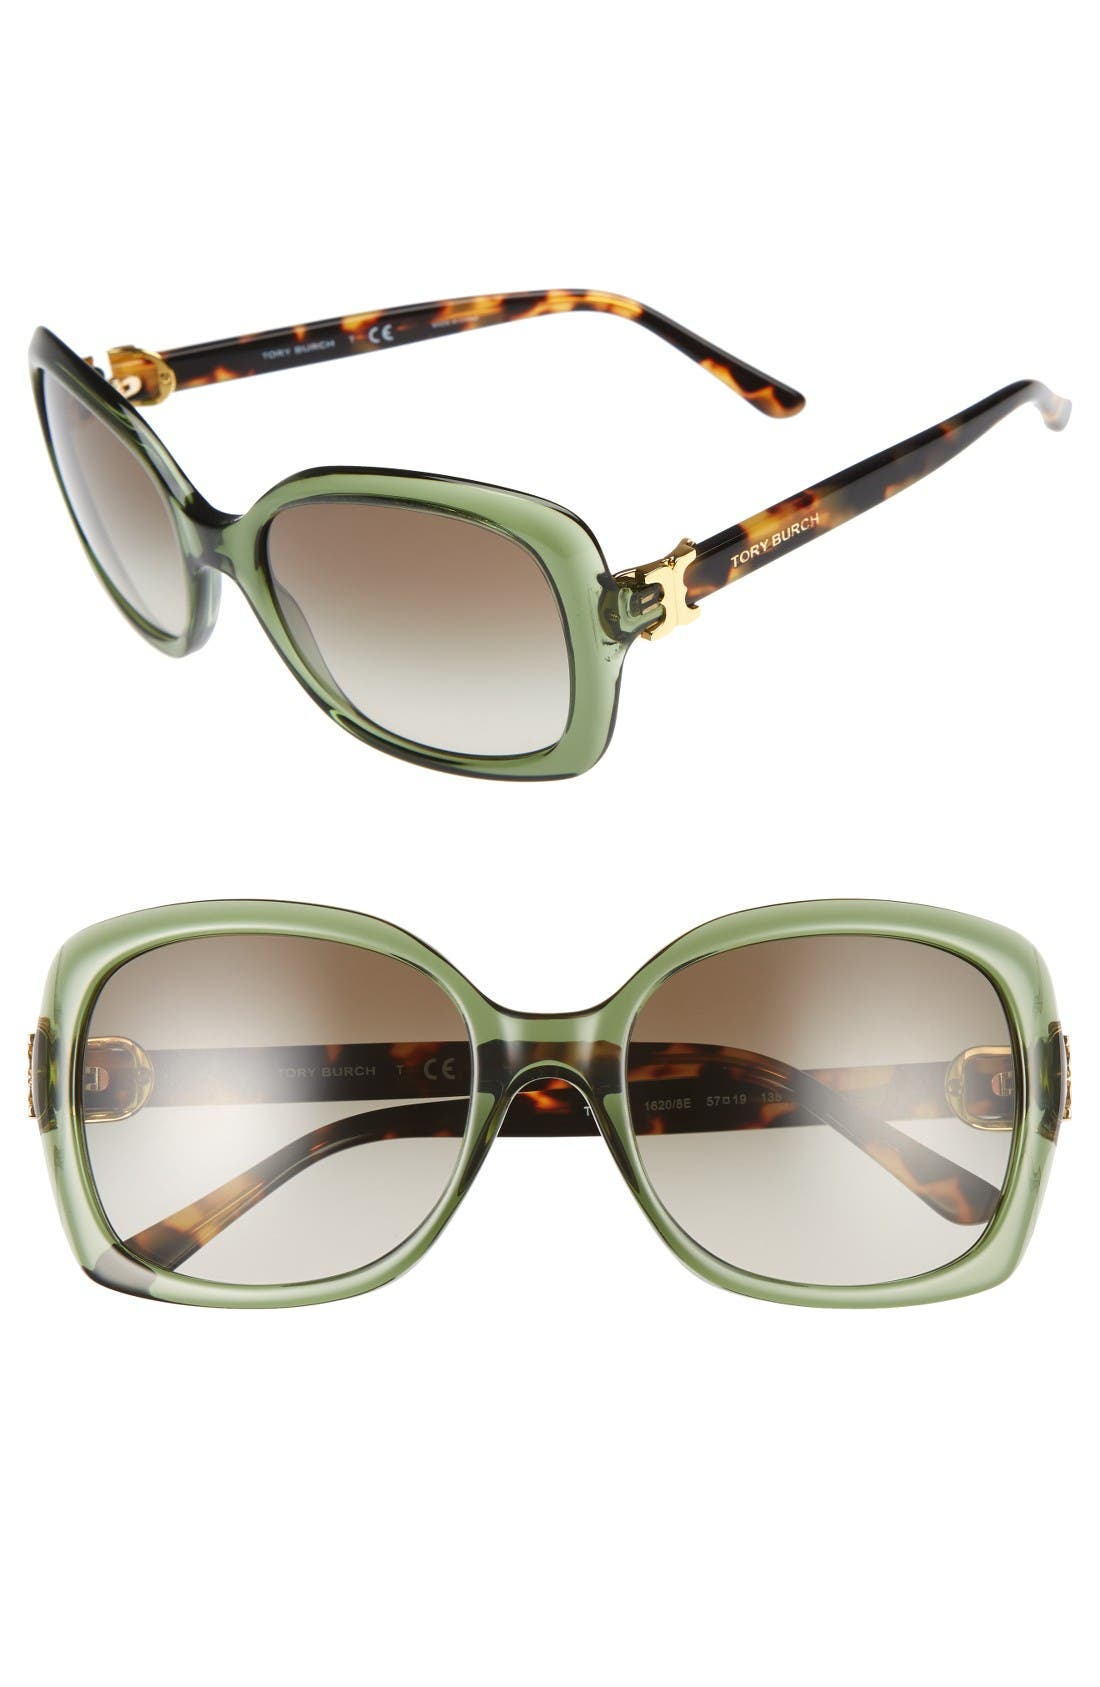 Tory Burch 57mm Oversized Sunglasses